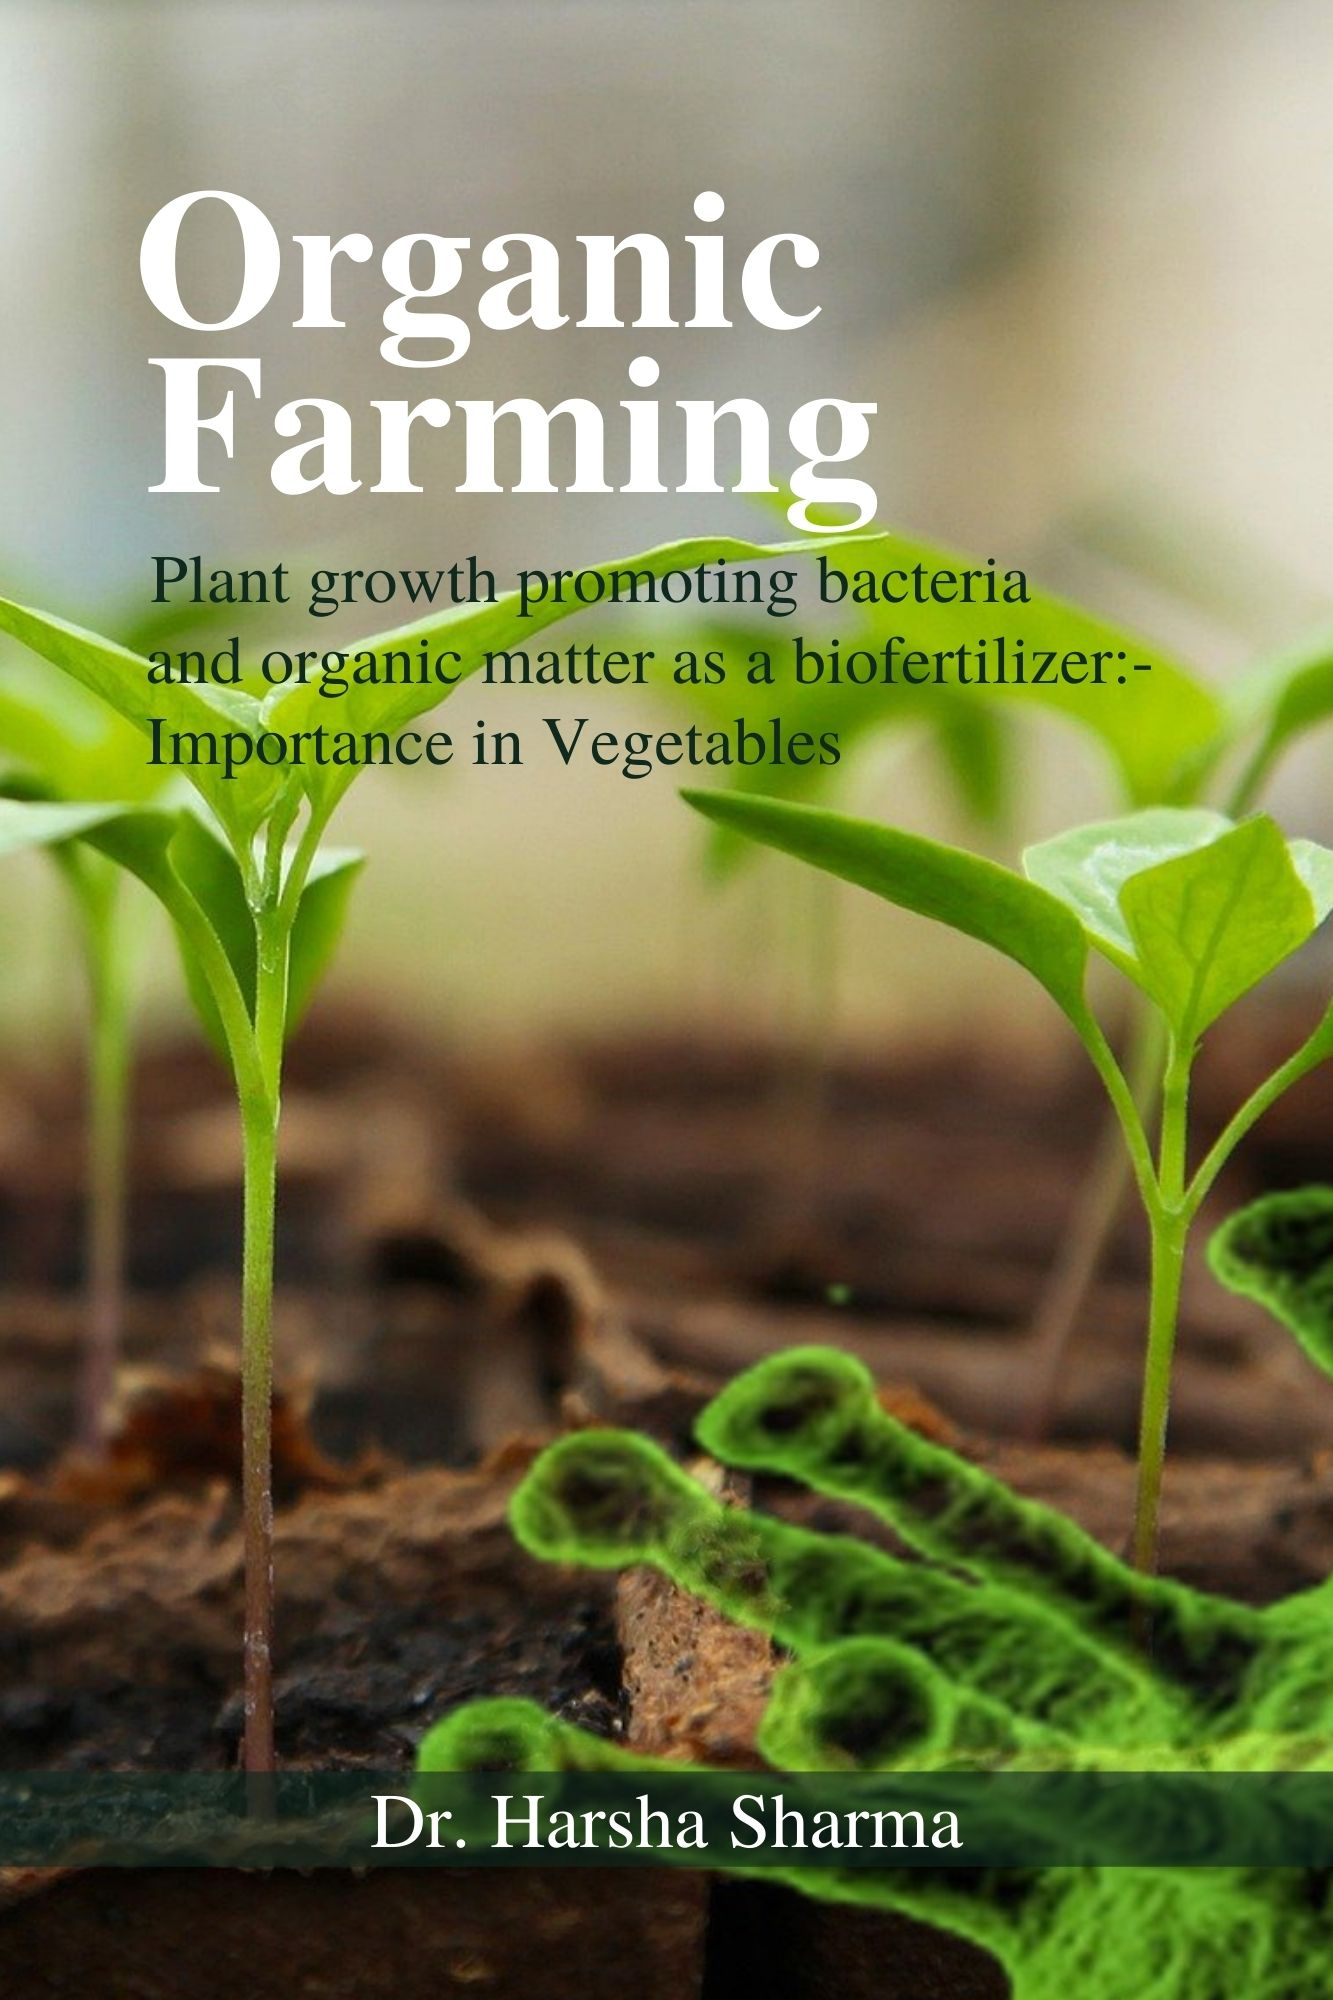 Organic Farming - Plant growth promoting bacteria and organic matter as a biofertilizer:- Importance in Vegetables